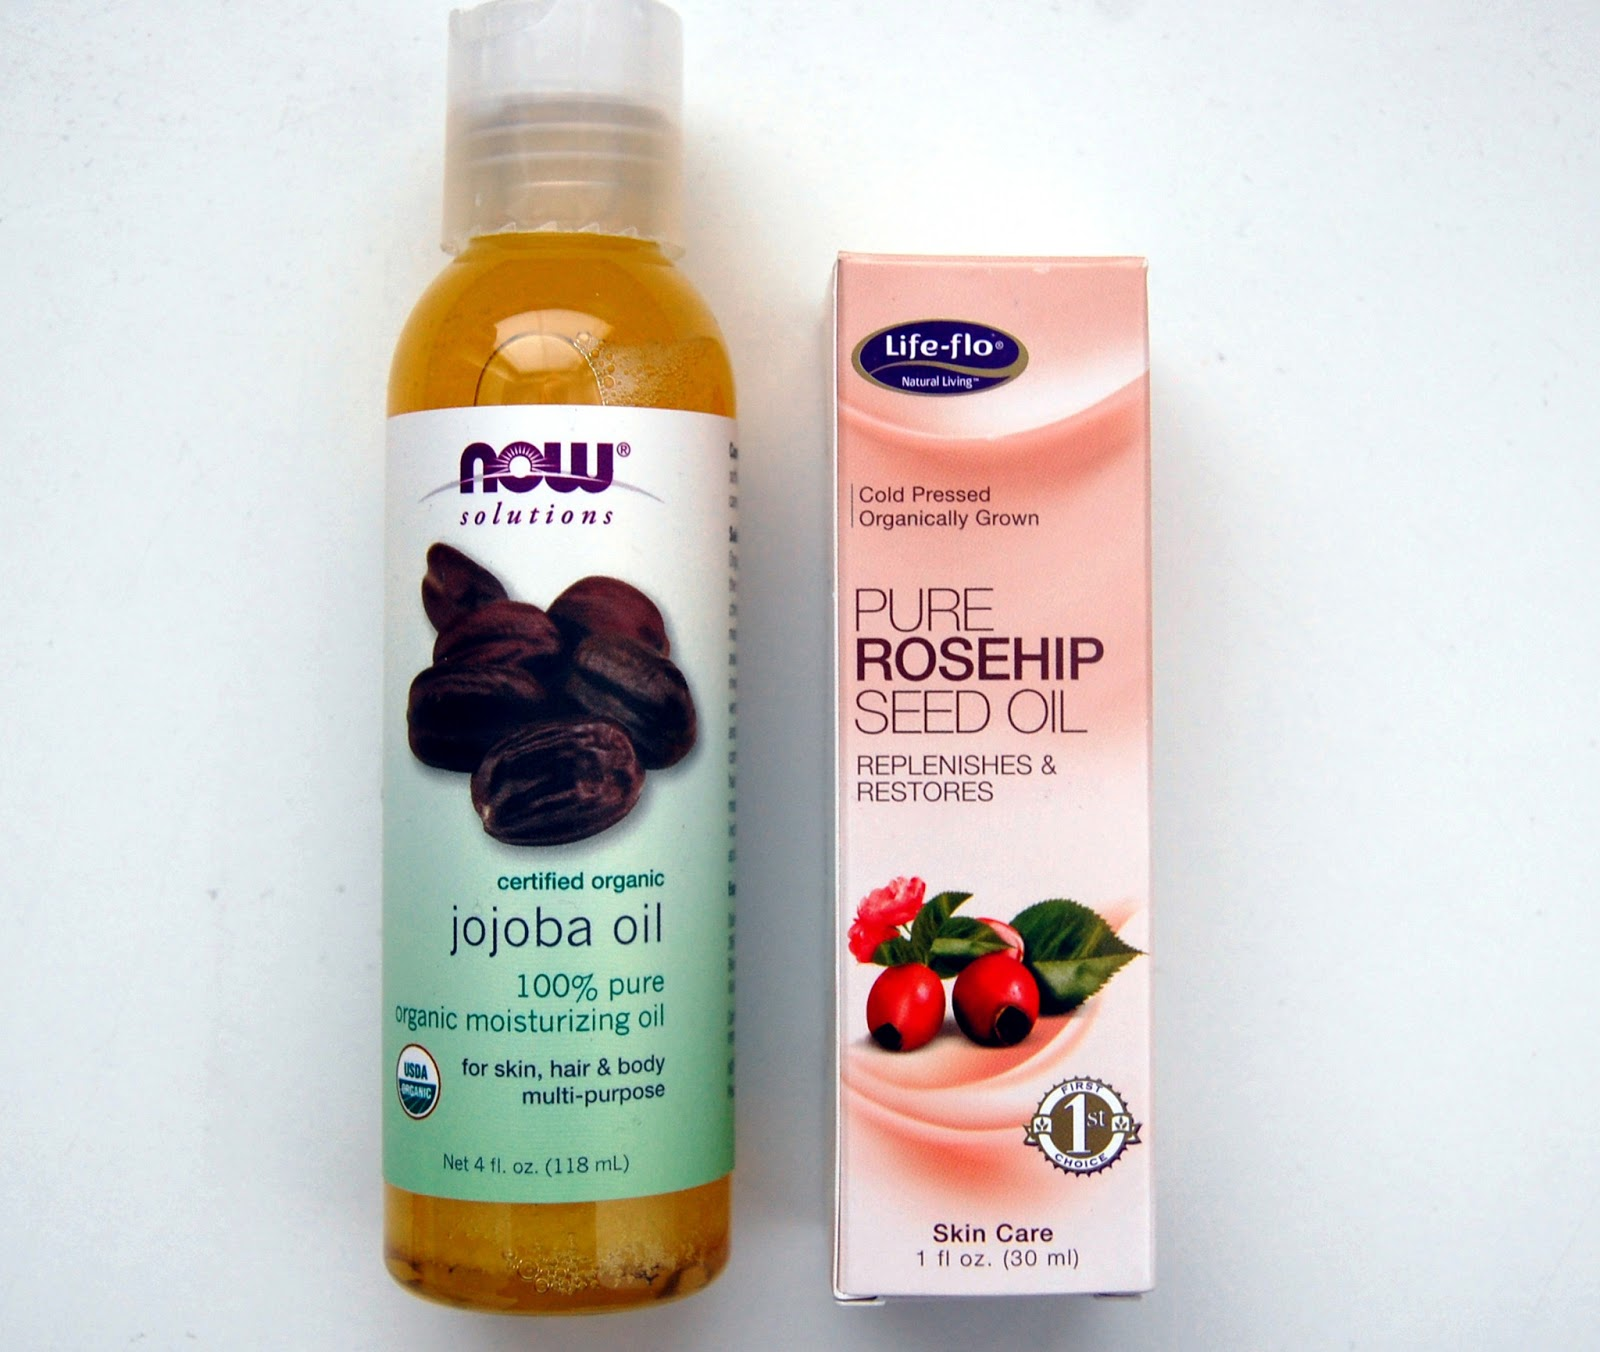 Now Jojoba Oil Life Flo Health Rosehip Seed Oil